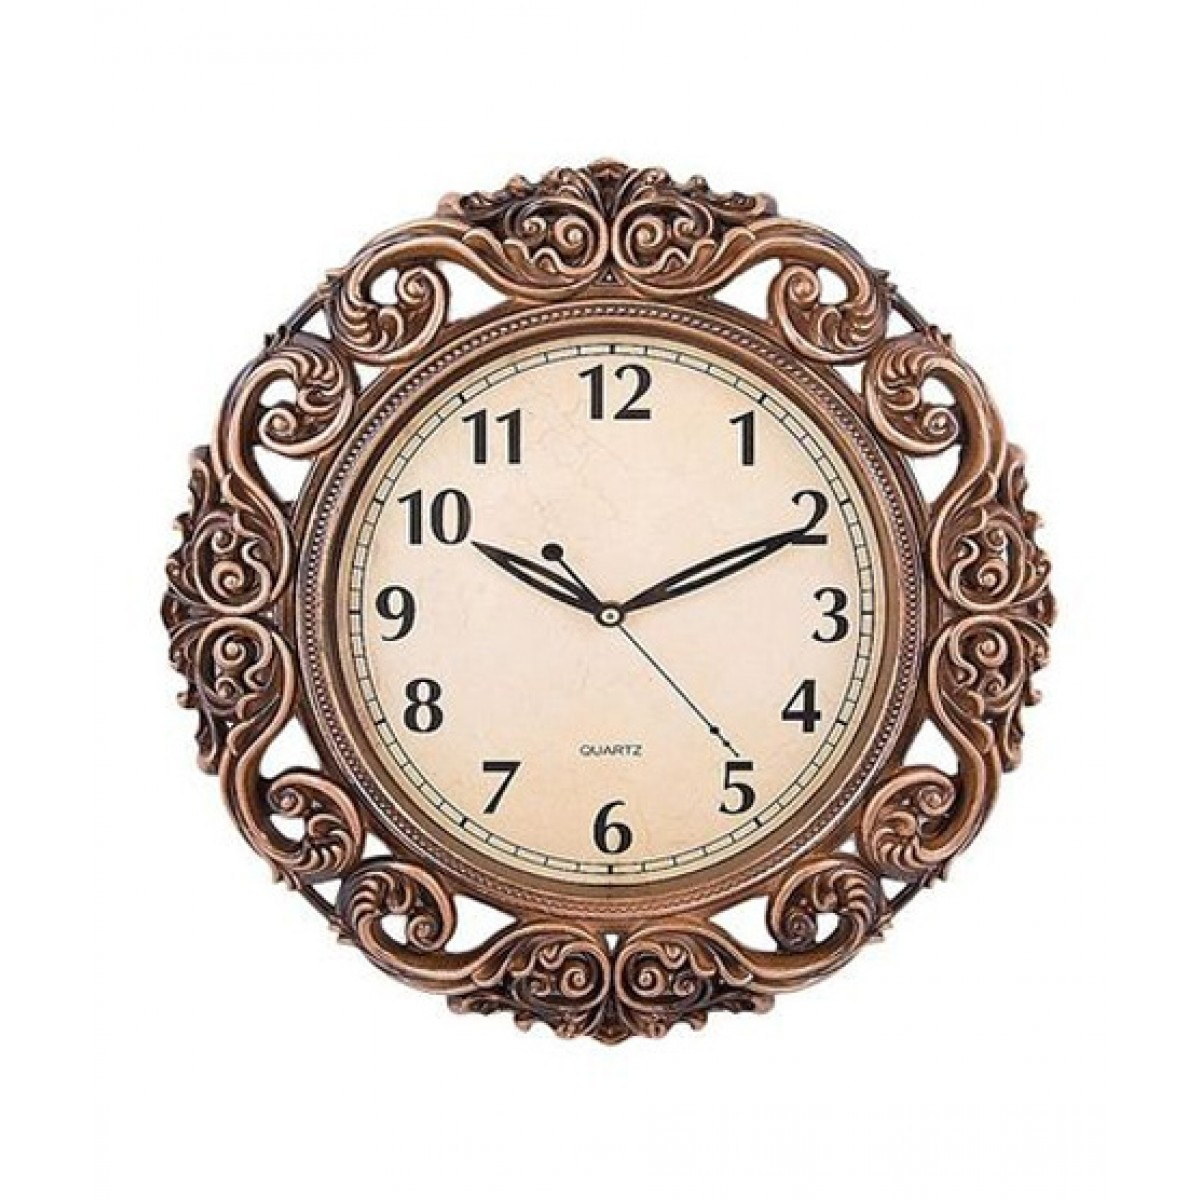 Buy Clock Asaan Buy Antique Wall Clock With Bronze Finishing 480